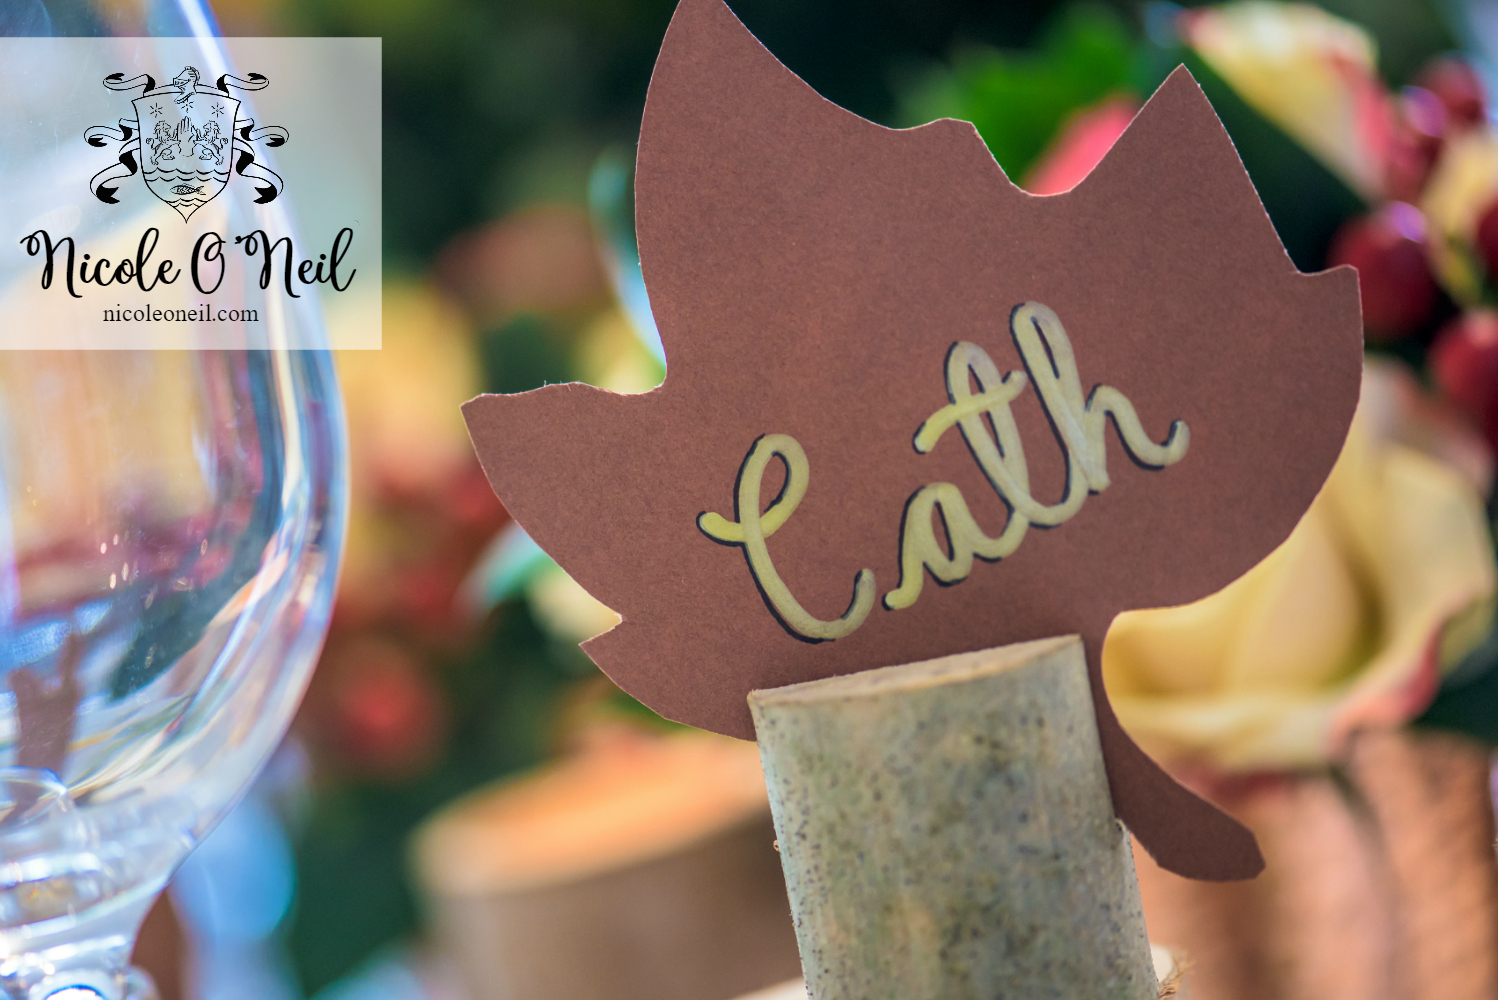 Simple Rustic Autumn Table Setting Ideas for Dinner Parties and Wedding Reception Inspiration – Placecards